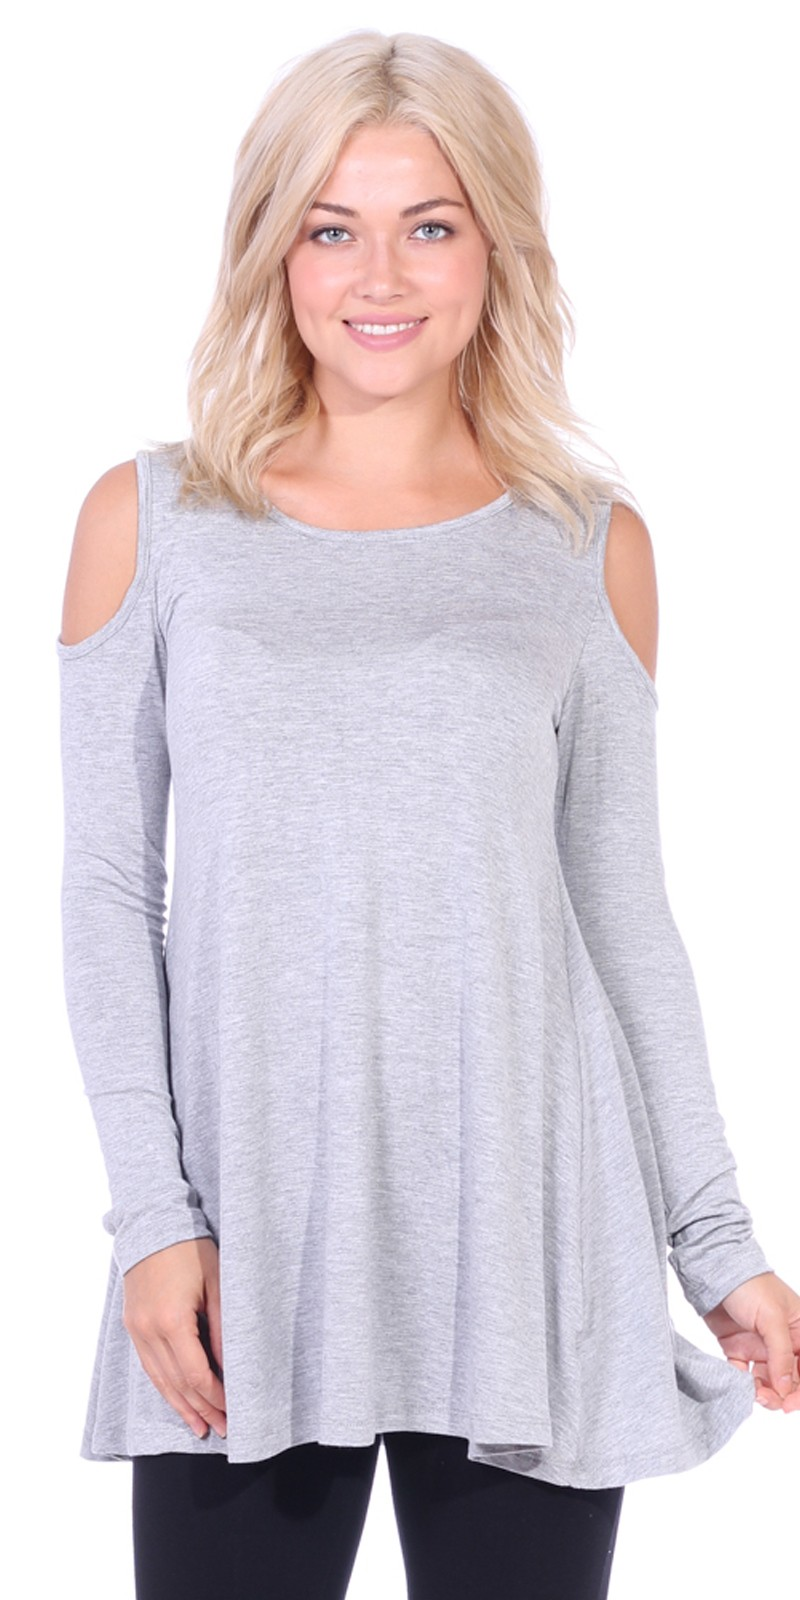 Open Cut Out Cold Shoulder Tunic Top for Women - Long Sleeve Top for Leggings - Made In USA - HGray